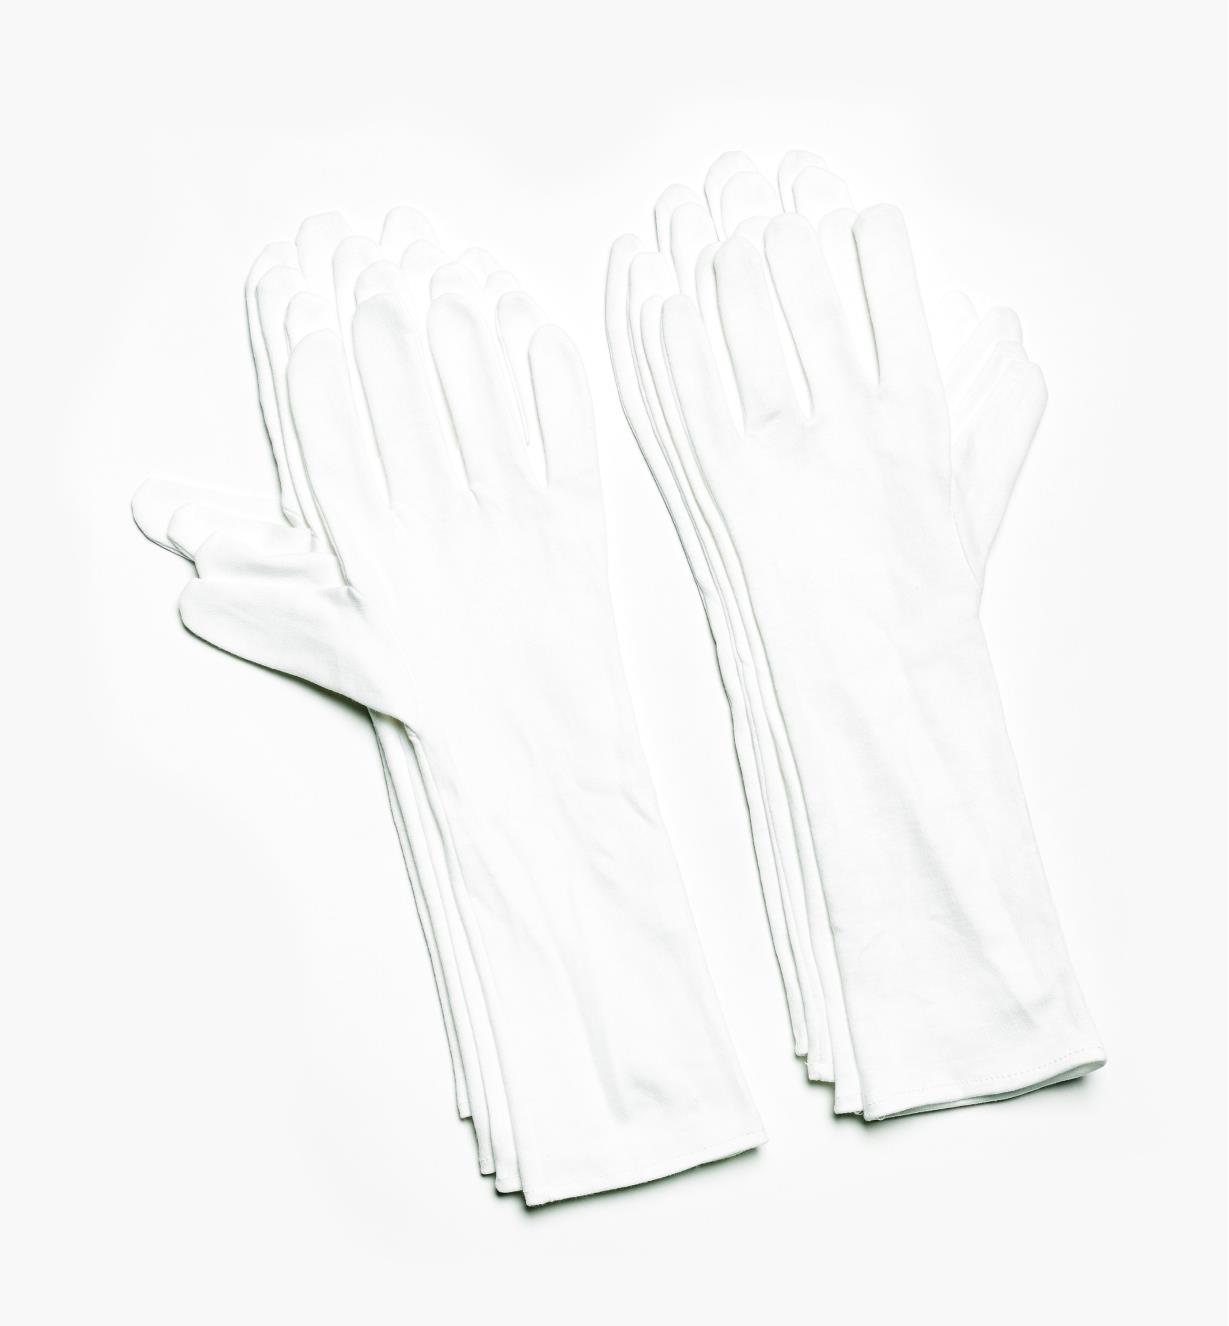 09A2059 - Large Extra-Long Cotton Glove Liners (size 9), pkg. of 8